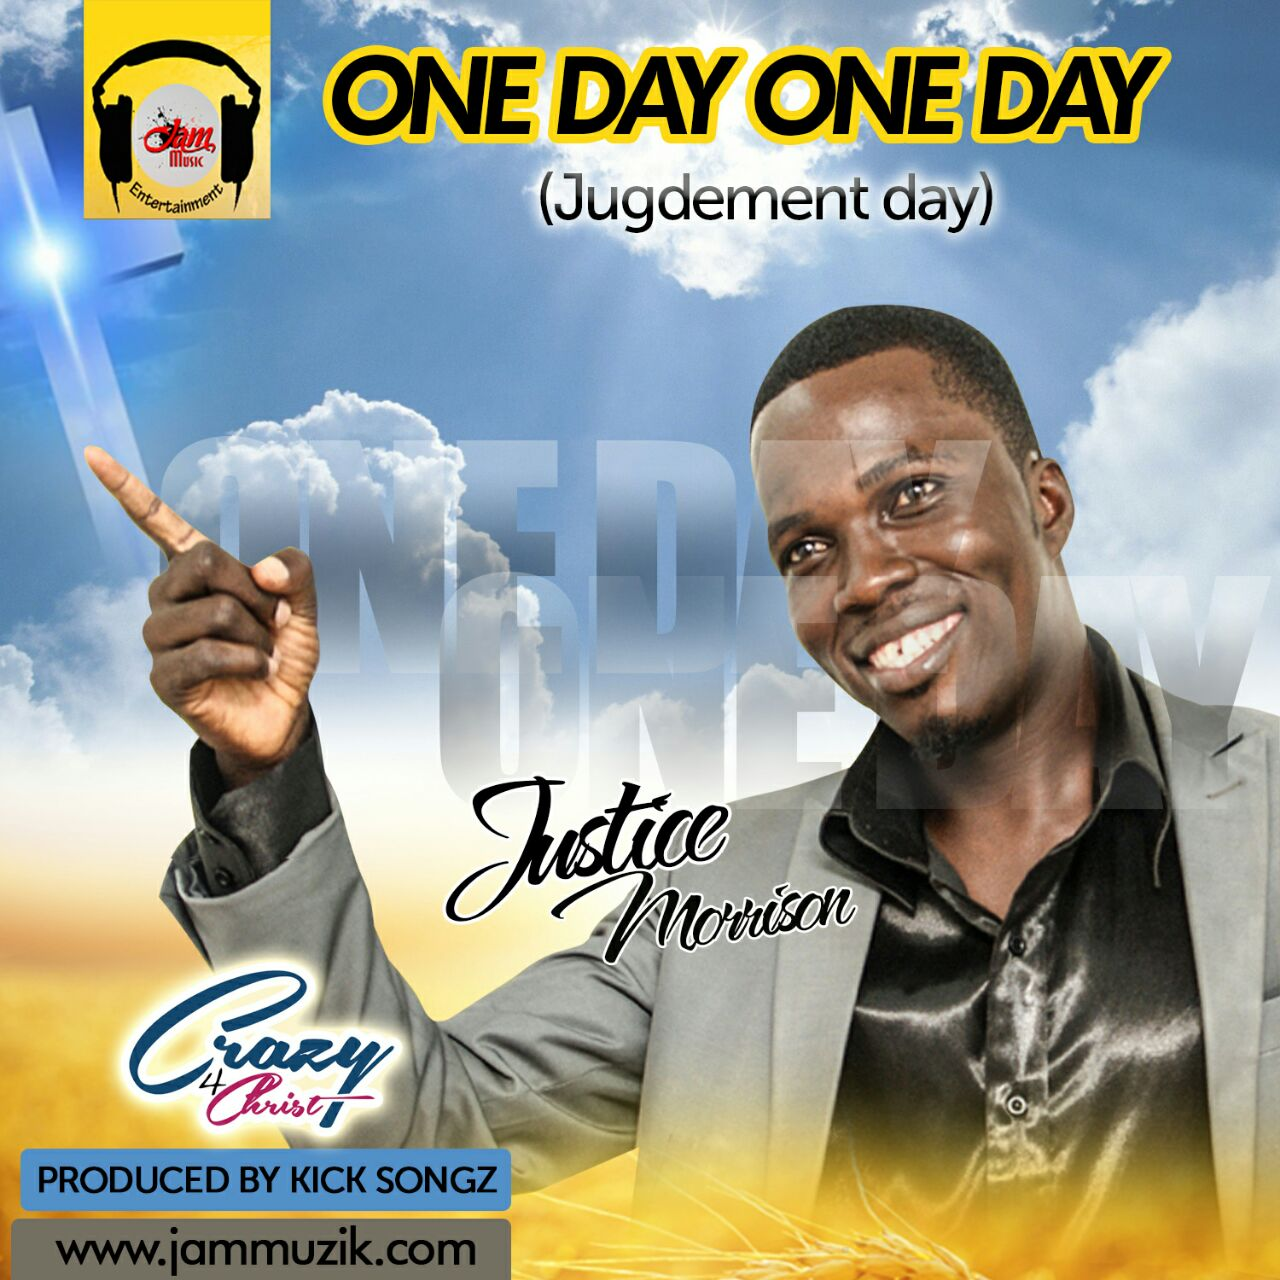 Justice Morrison - One Day (Judgement Day) Prod. By Kick Songz